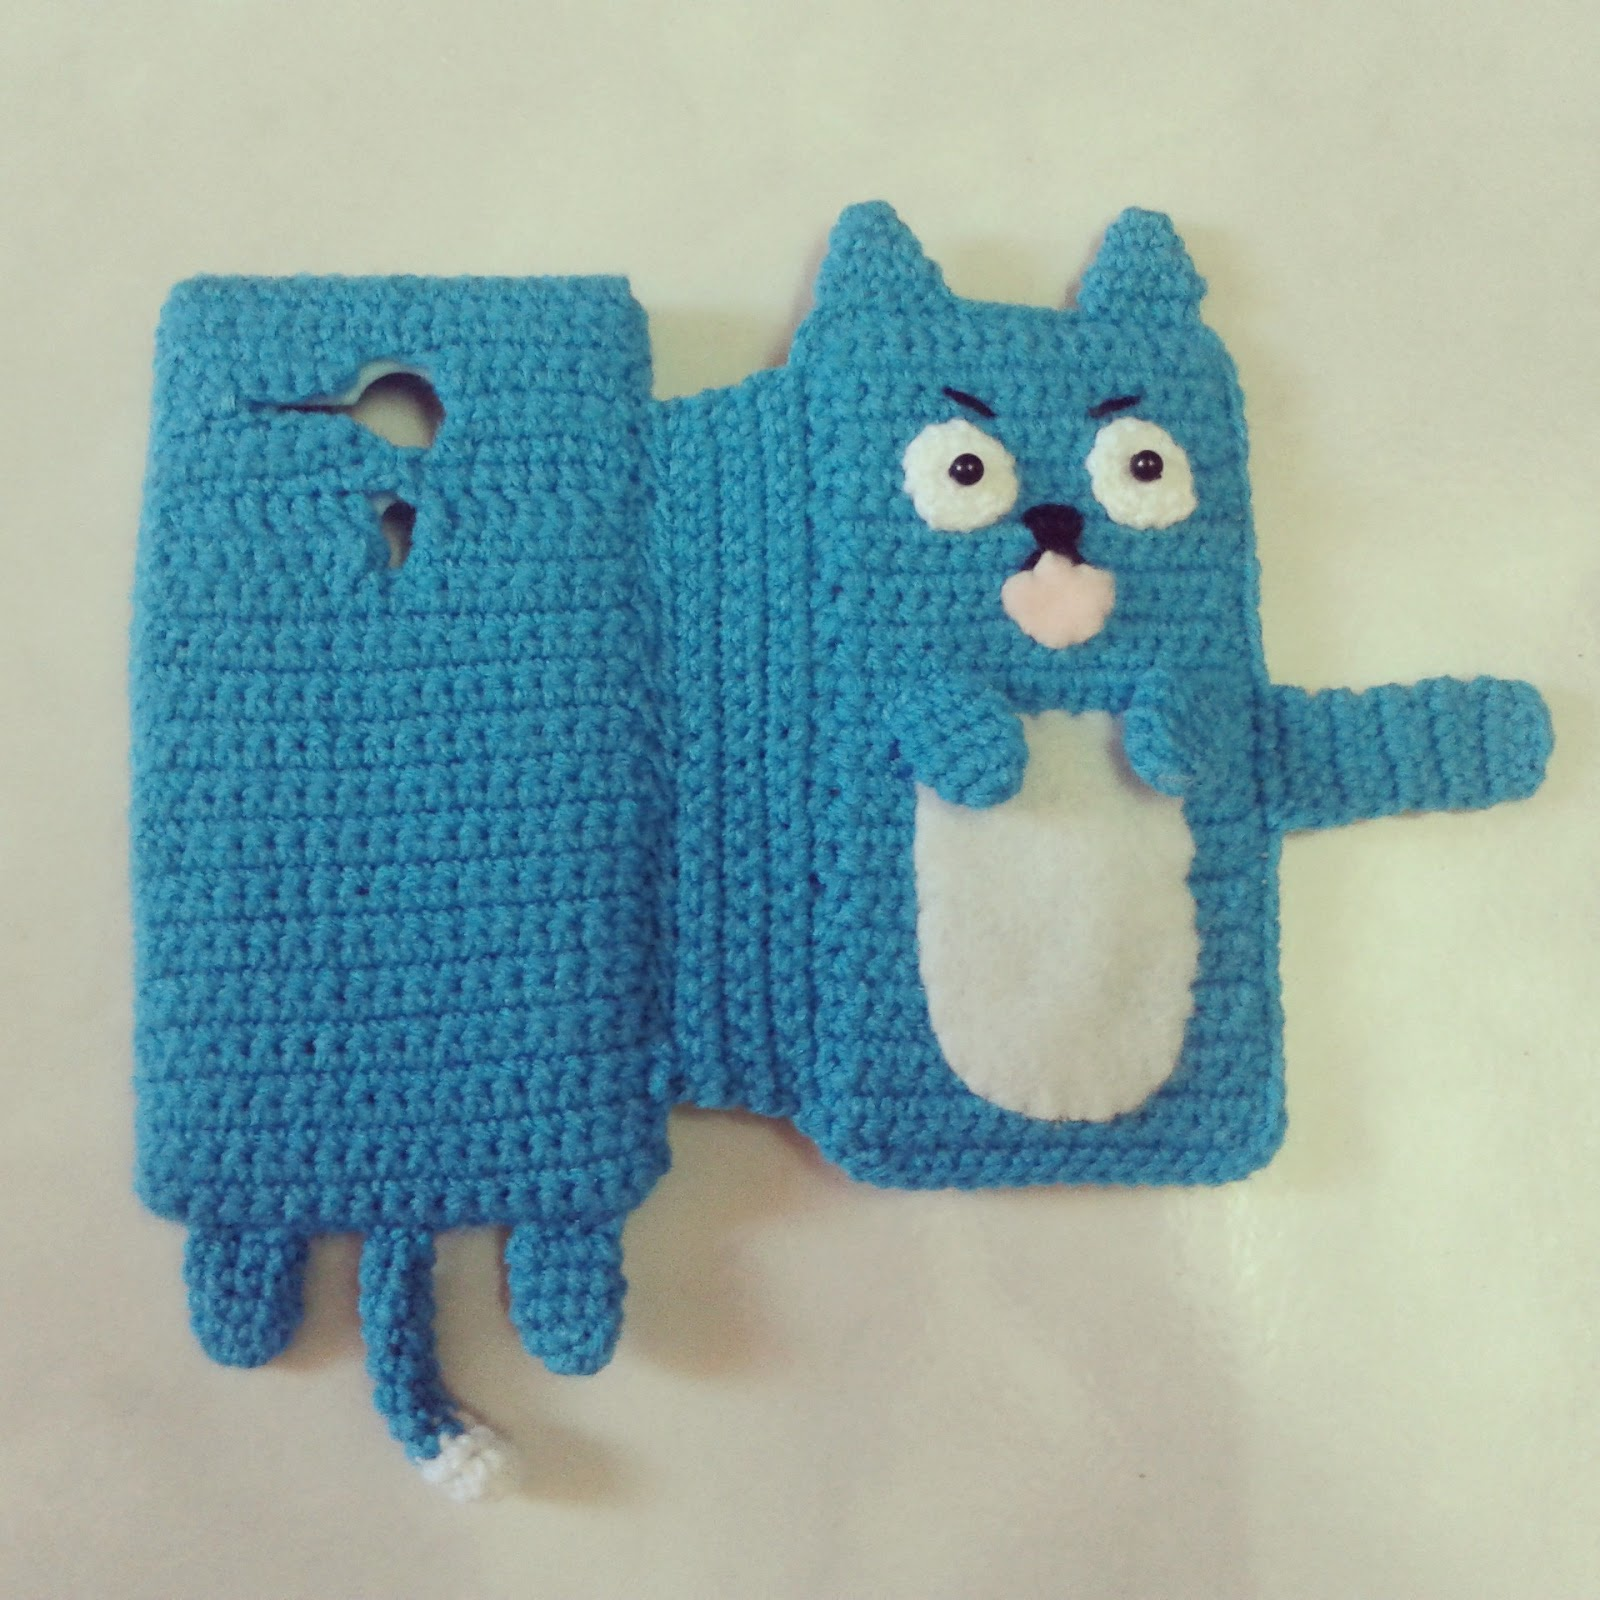 Yarnland aka CarmenPay Craft: Crochet phone case